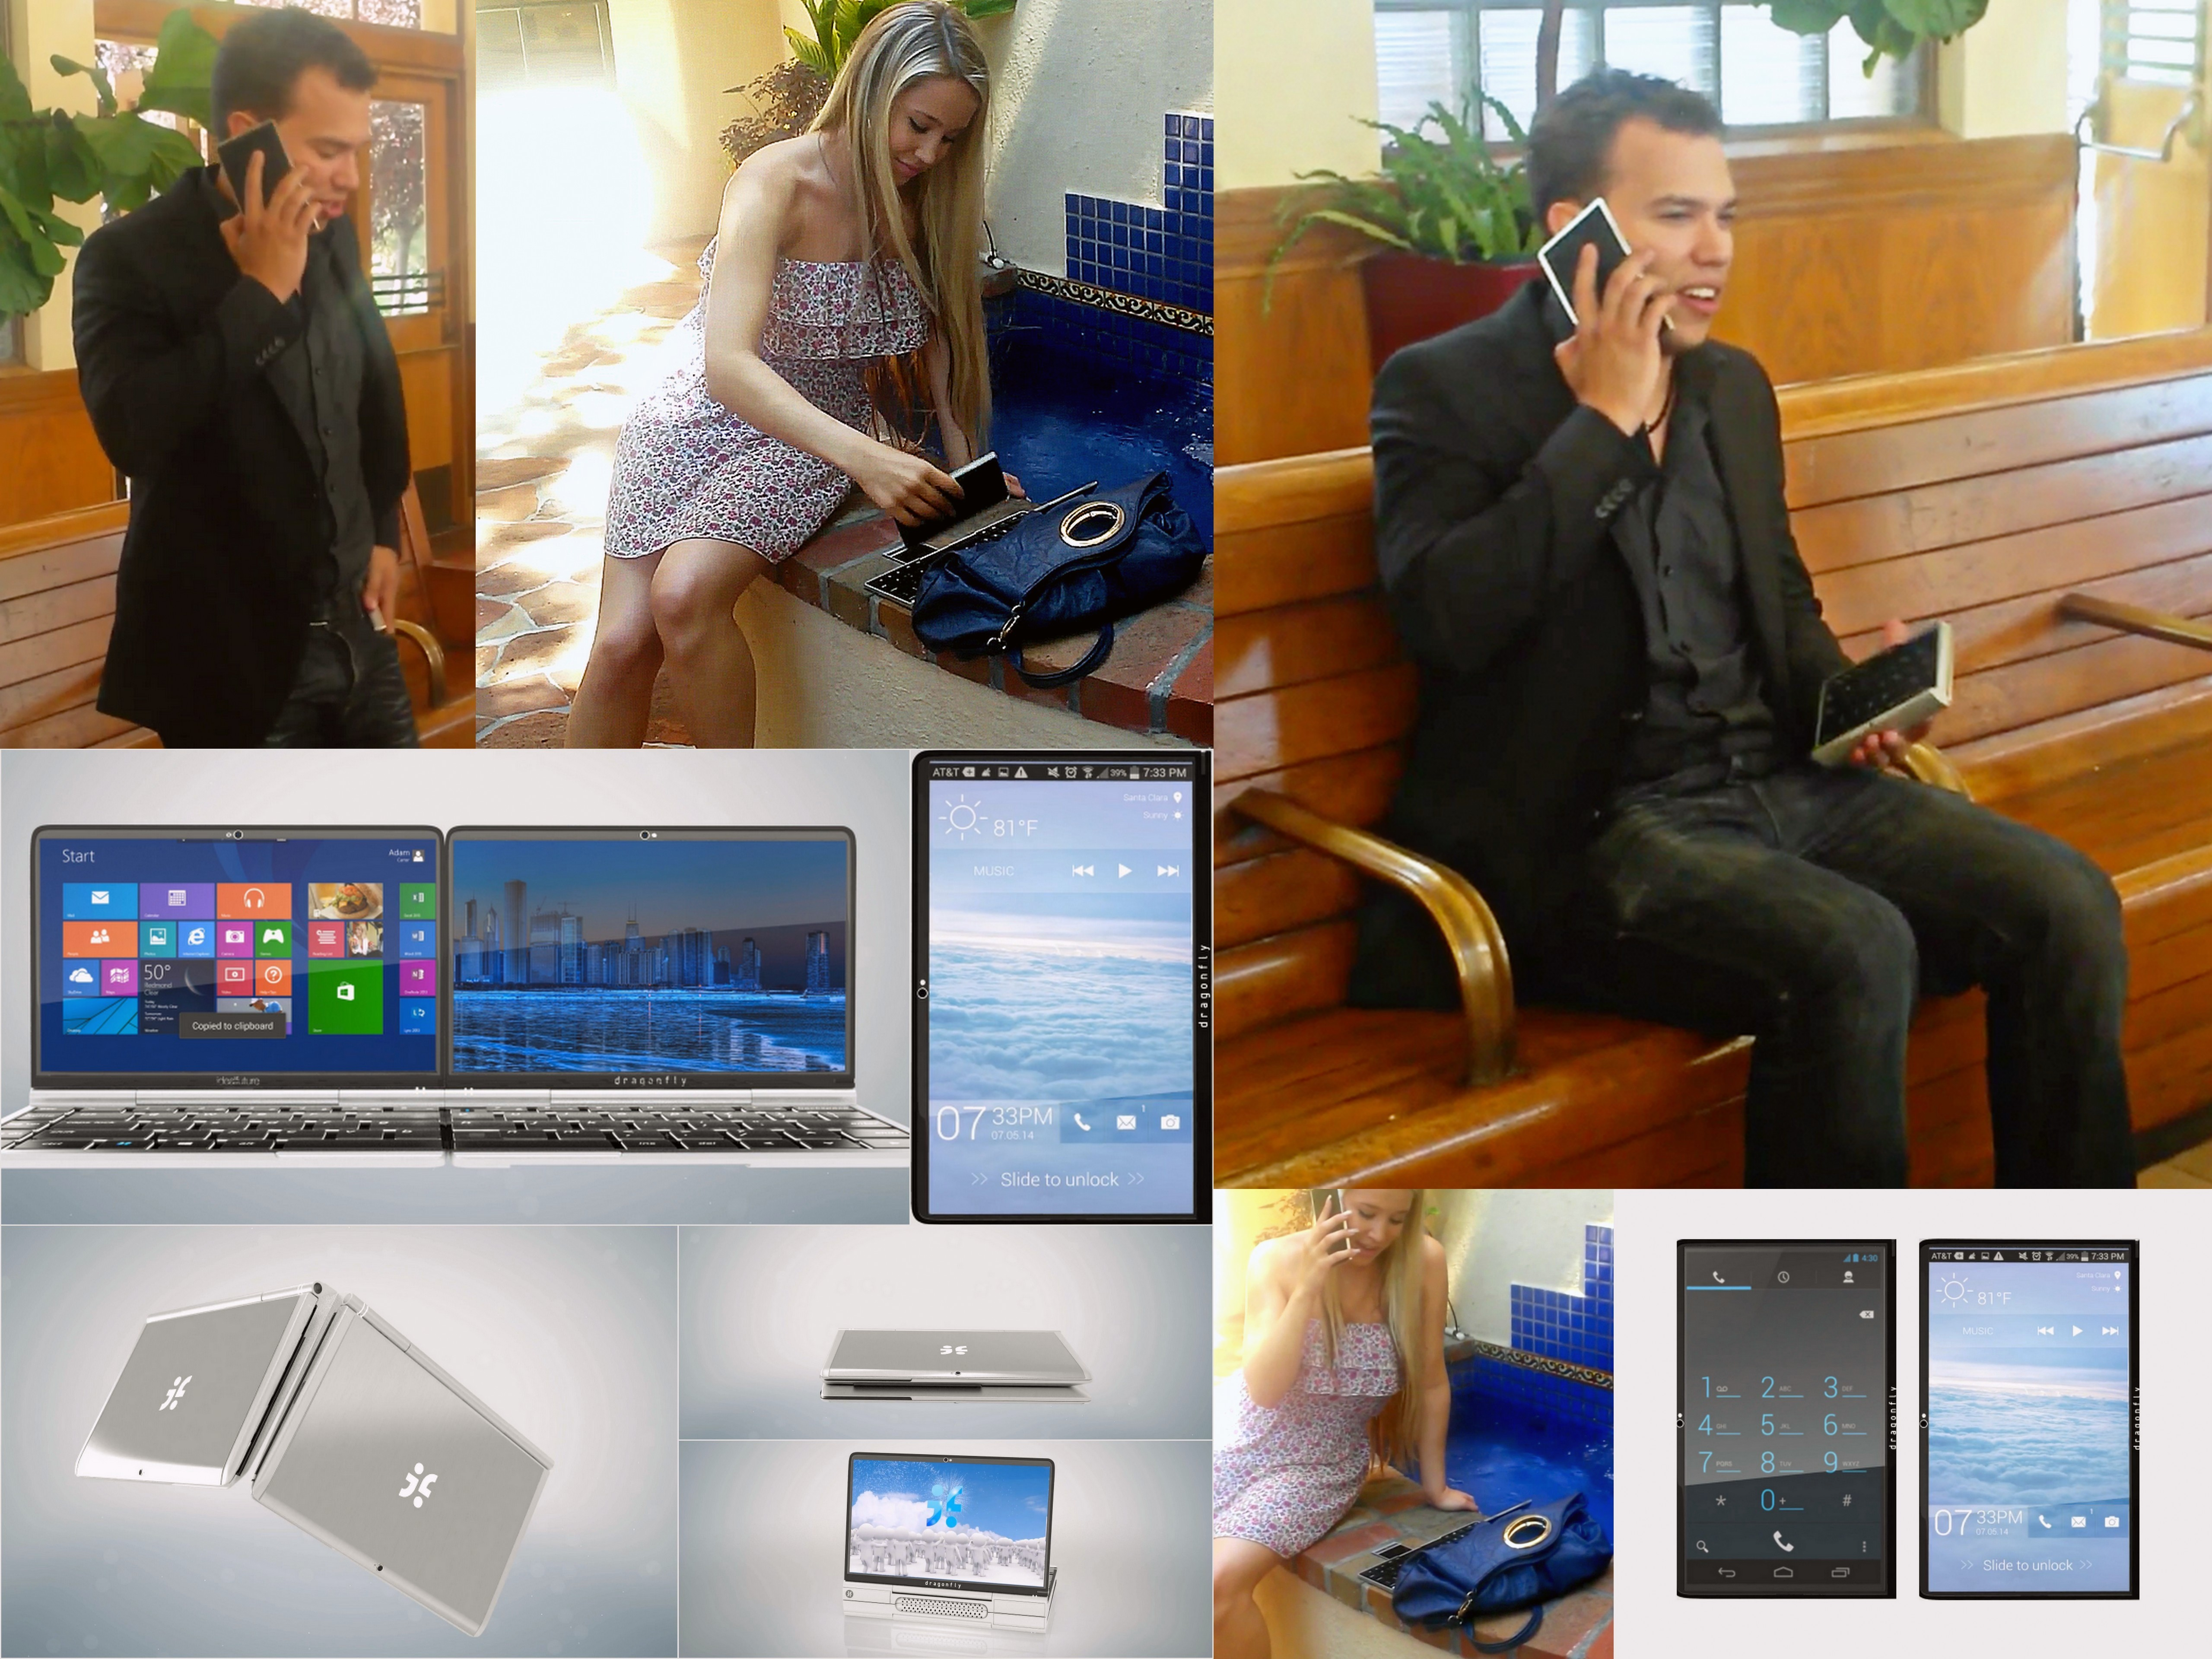 20141019114431-timo_and_larissa_on_the_phone_collage